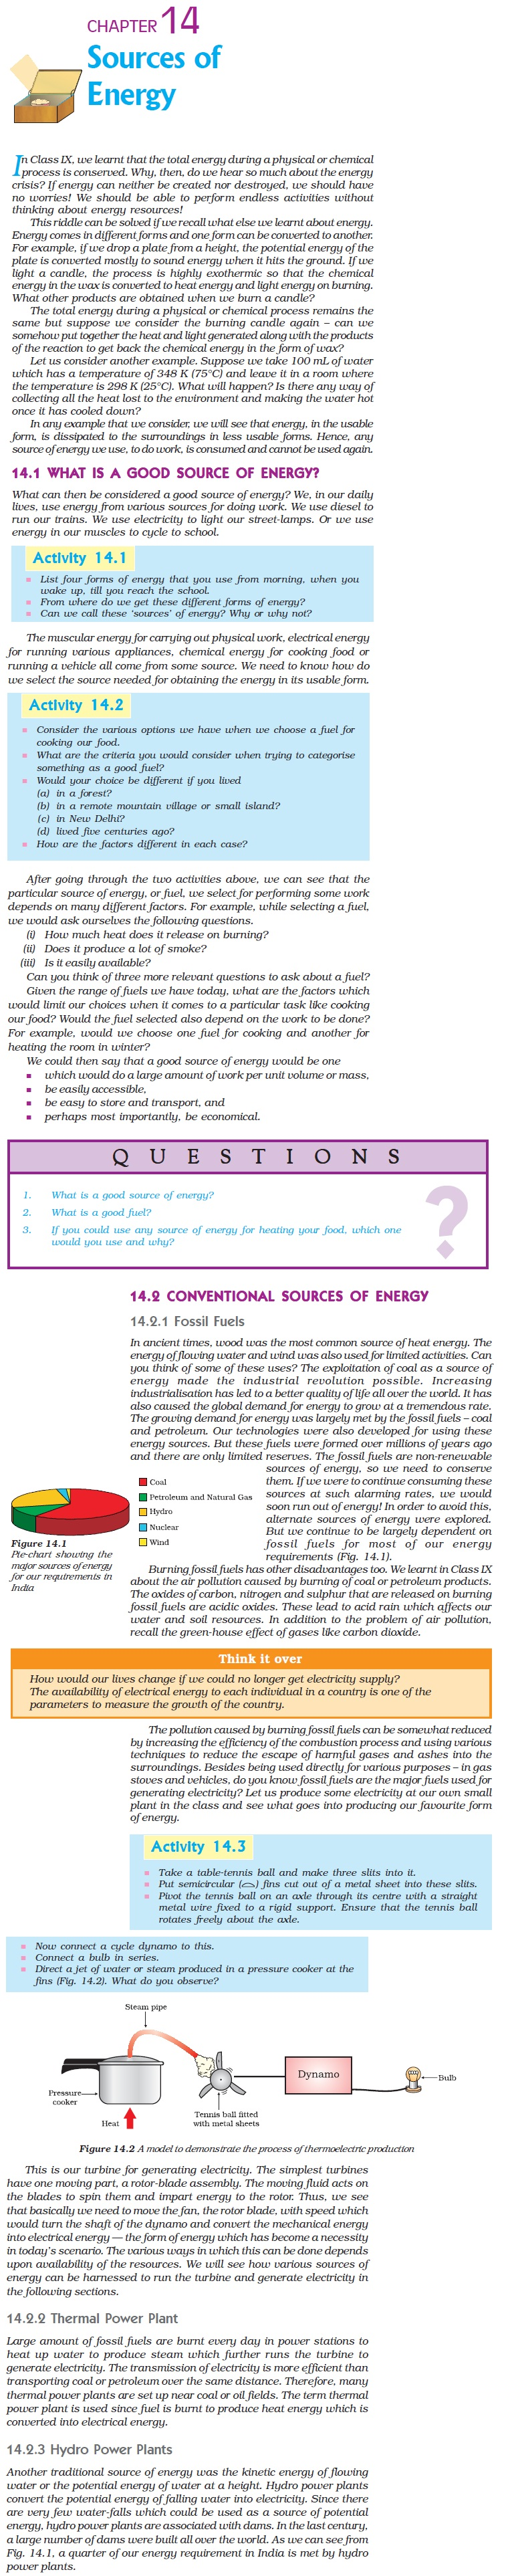 NCERT Class X Science Chapter 14 - Sources of Energy